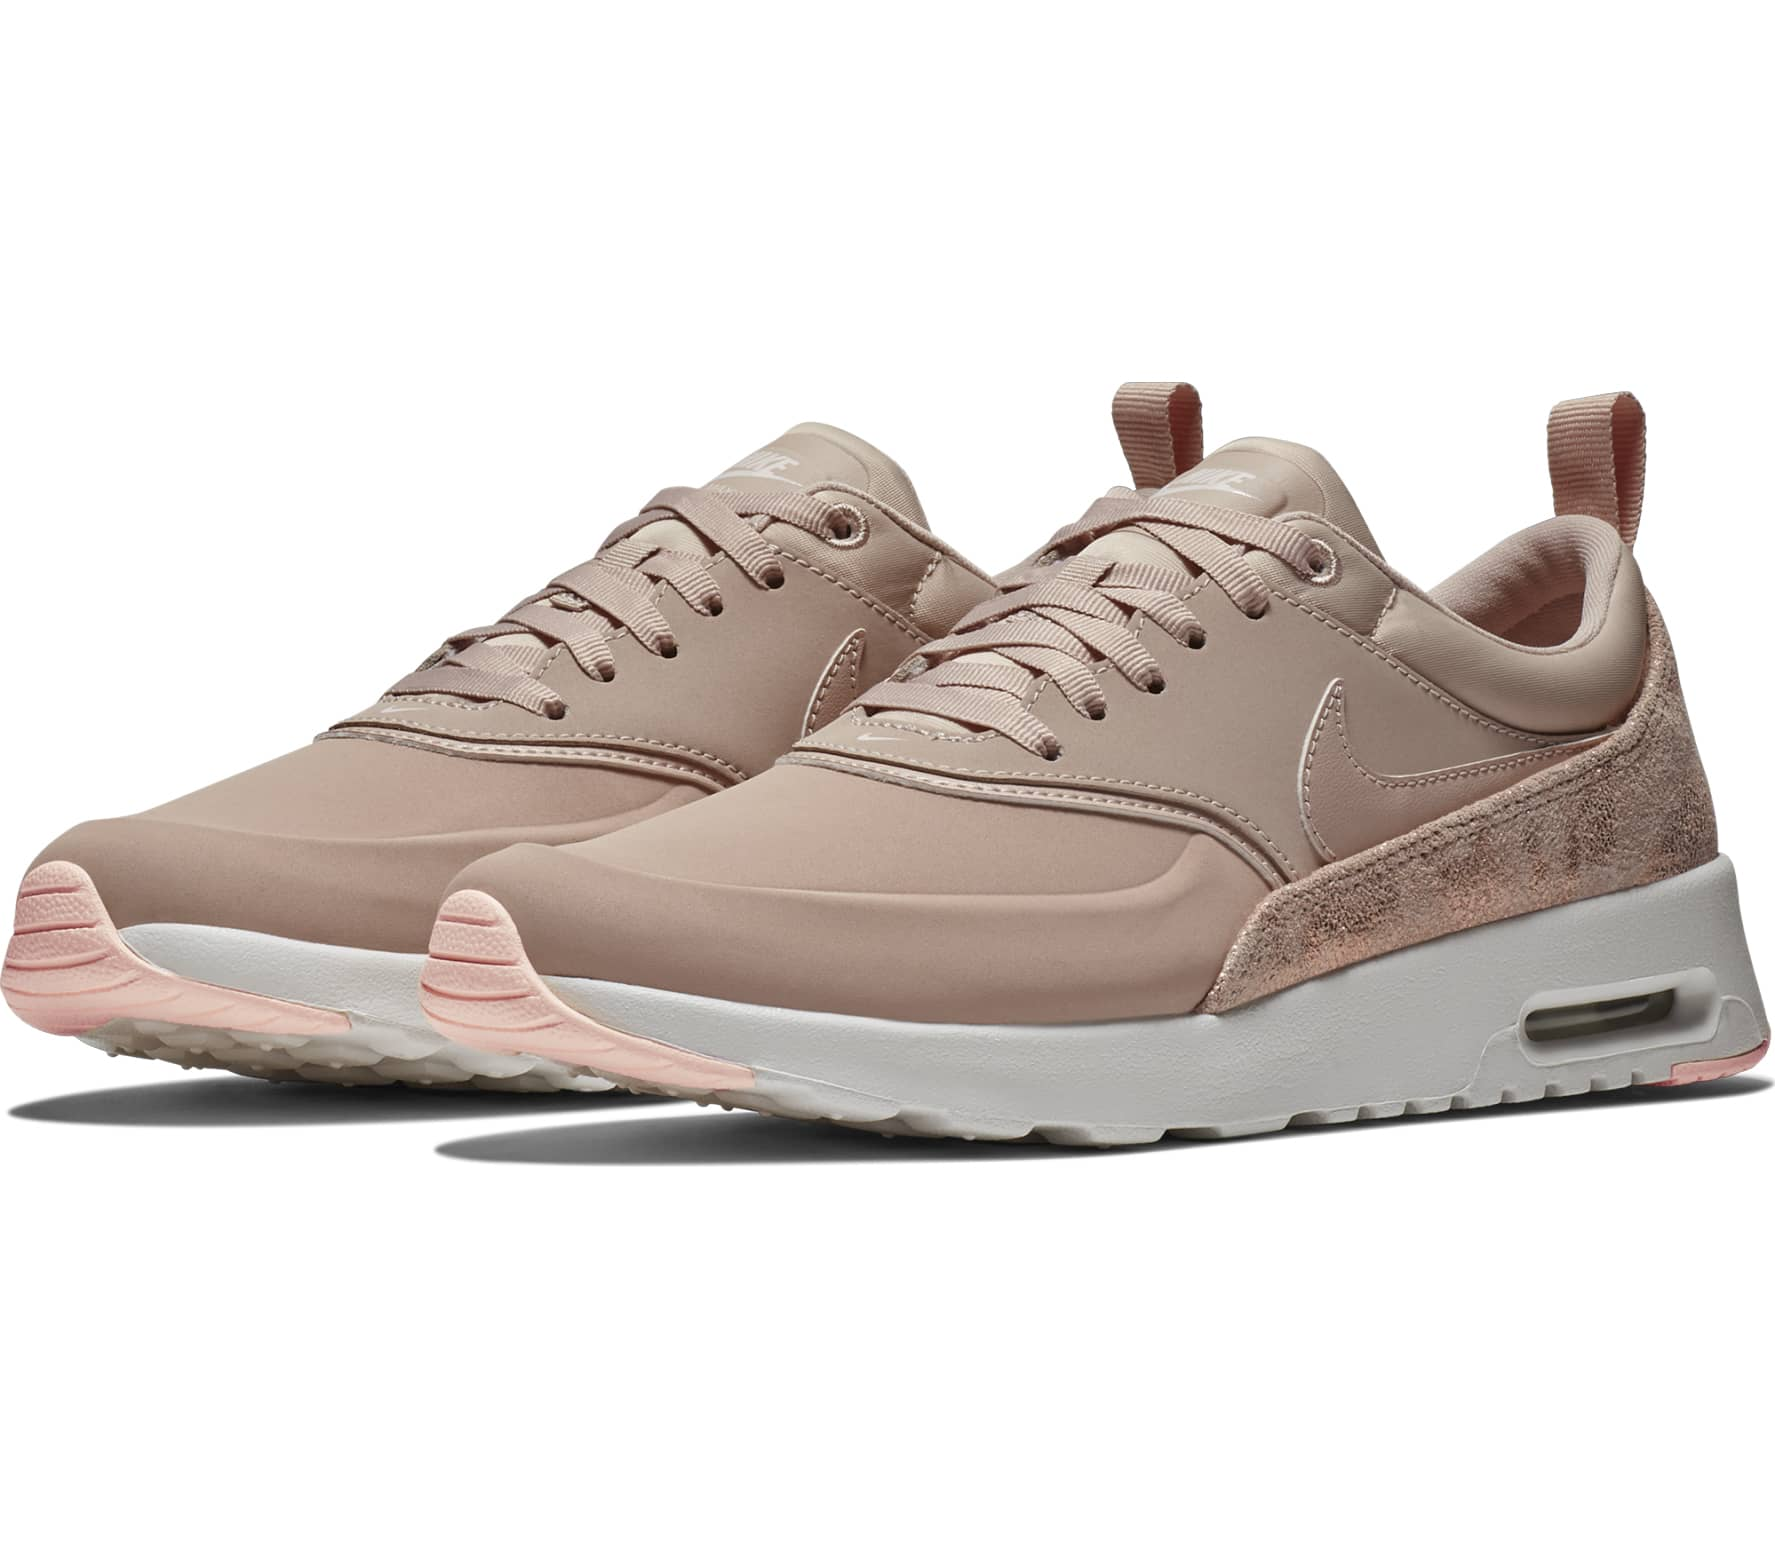 purchase cheap d8ee6 a1993 Nike Sportswear - Air Max Thea Premium Damen Sneaker (braun)